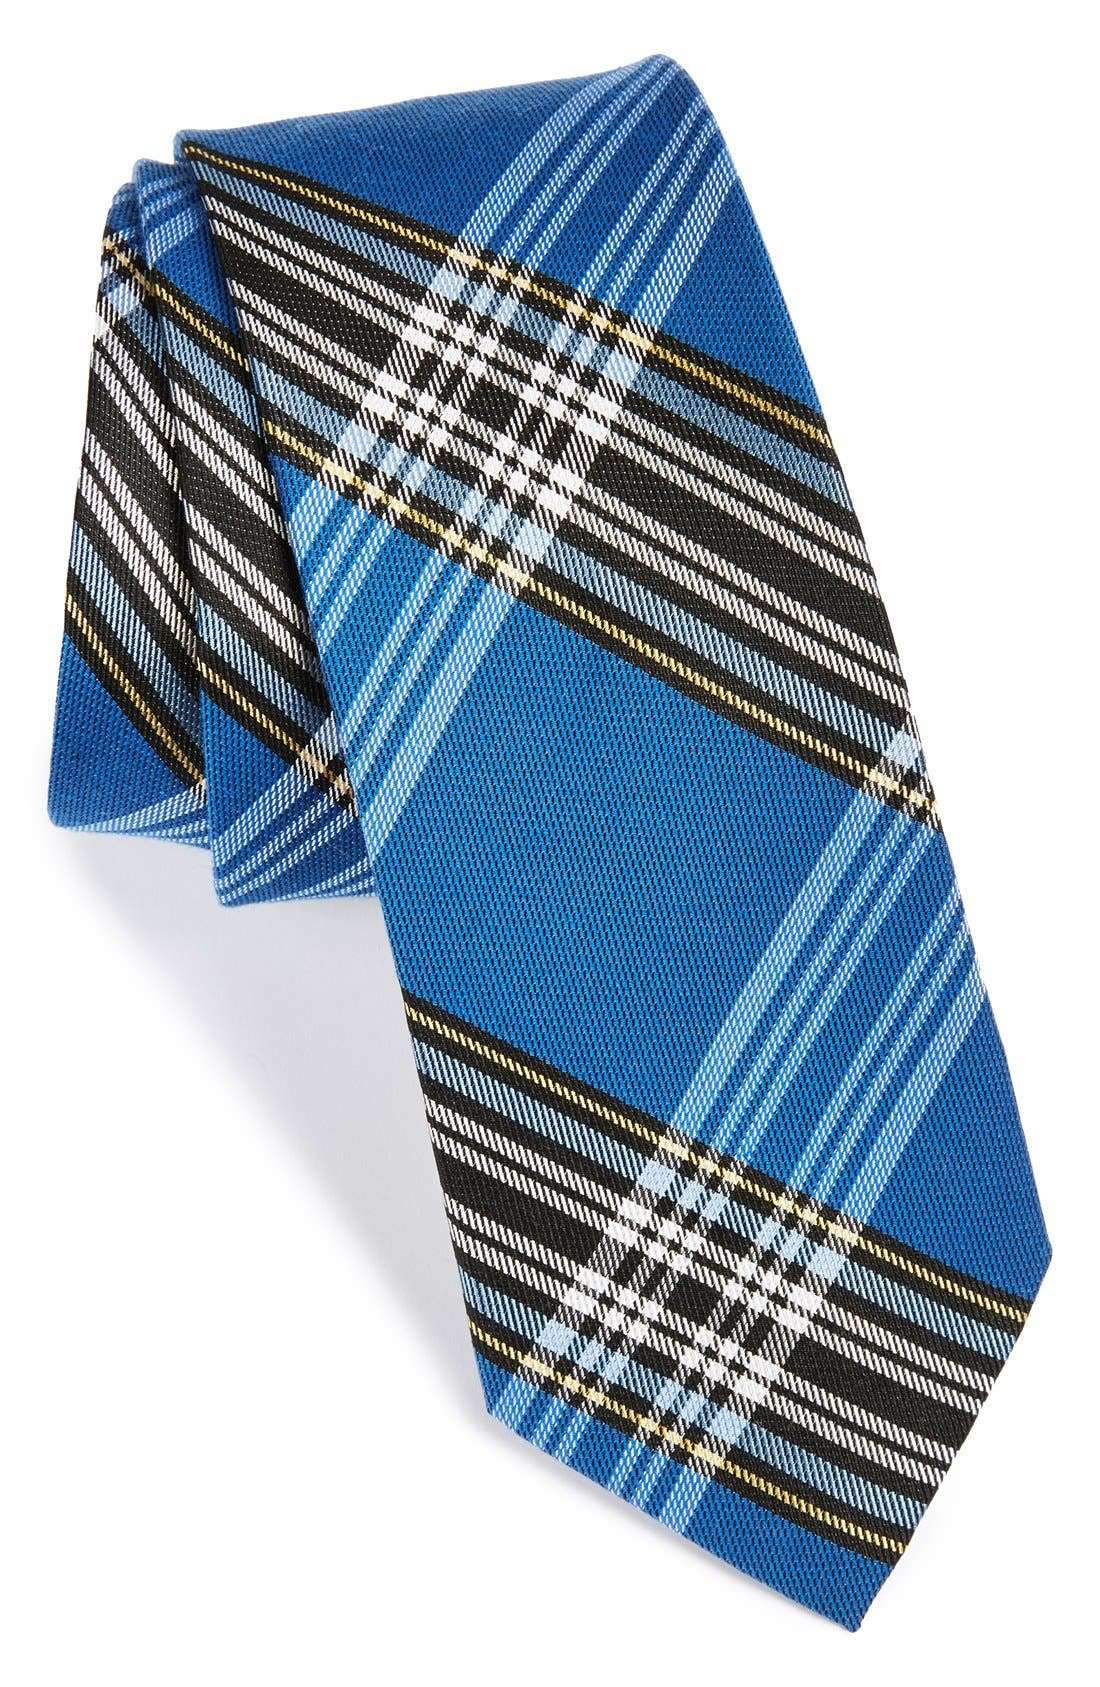 Alternate Image 1 Selected - 1901 'Delores' Plaid Silk & Cotton Tie